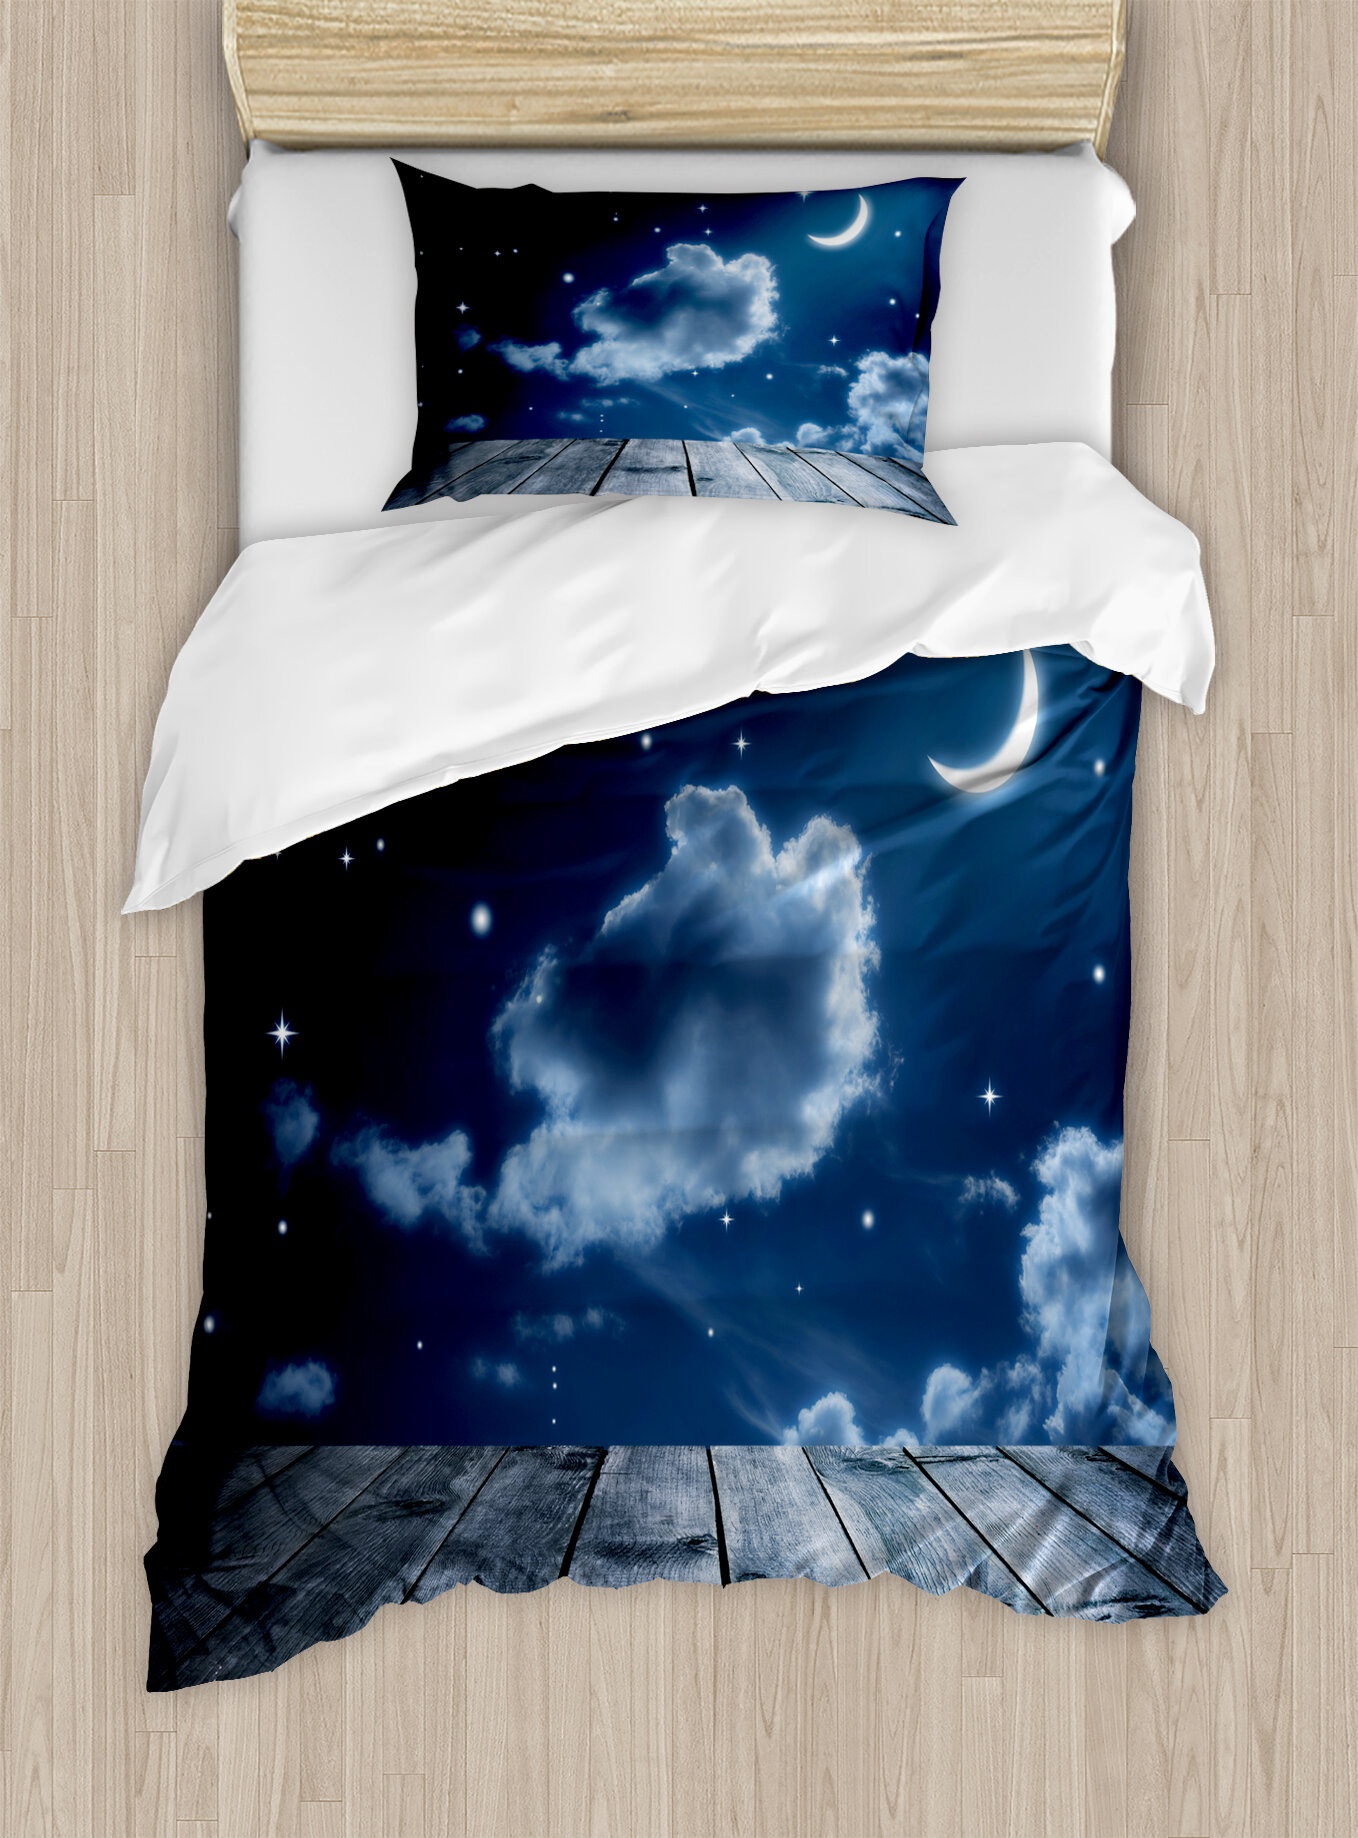 set fitted bedding room queen galaxy mississauga on target bag themed decor quilt walmart ideas pinterest diy from paint print bedroom to how furniture a amazing in celestial comforter pattern best projector sheets body bed duvet sets beddinginncom about blue